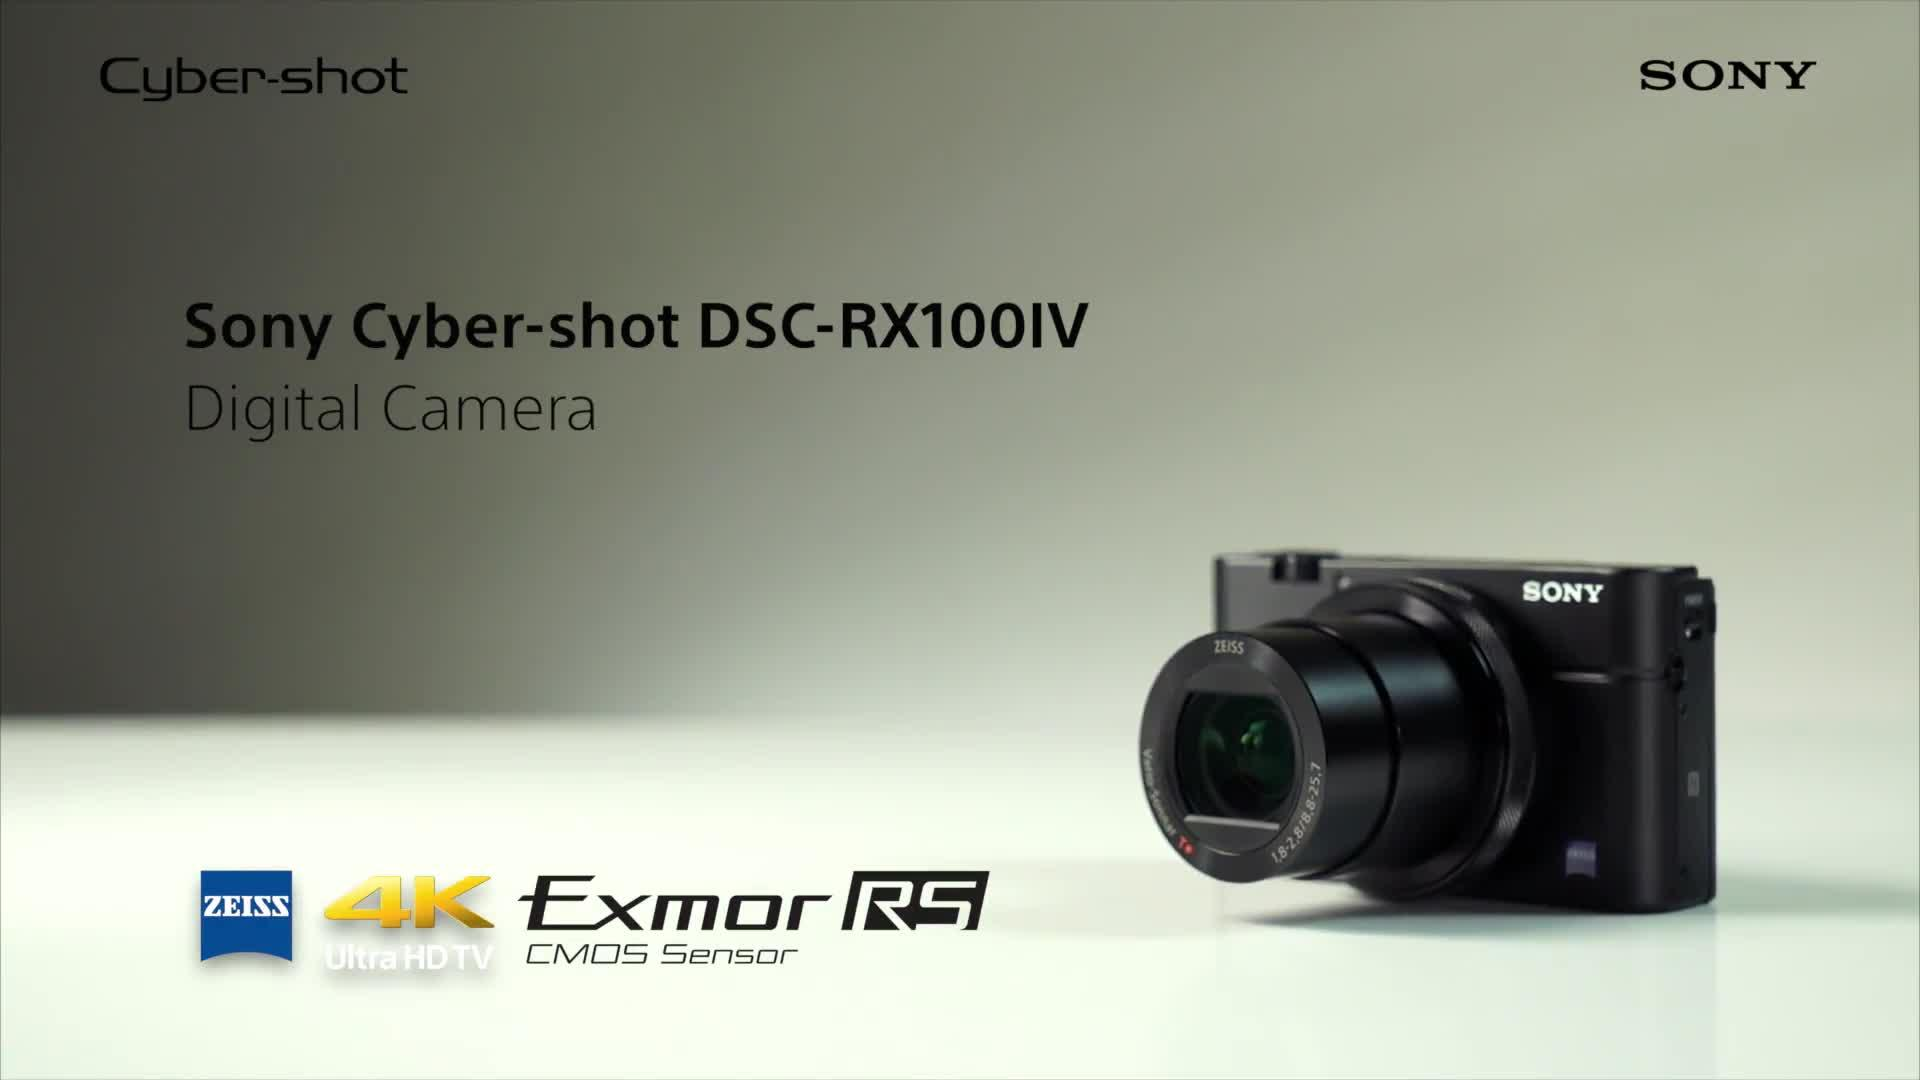 Sony Cybershot Dsc Rx100m4 4k Premium Digital Compact Camera With 40 Rx100 M4 X Slow Motion